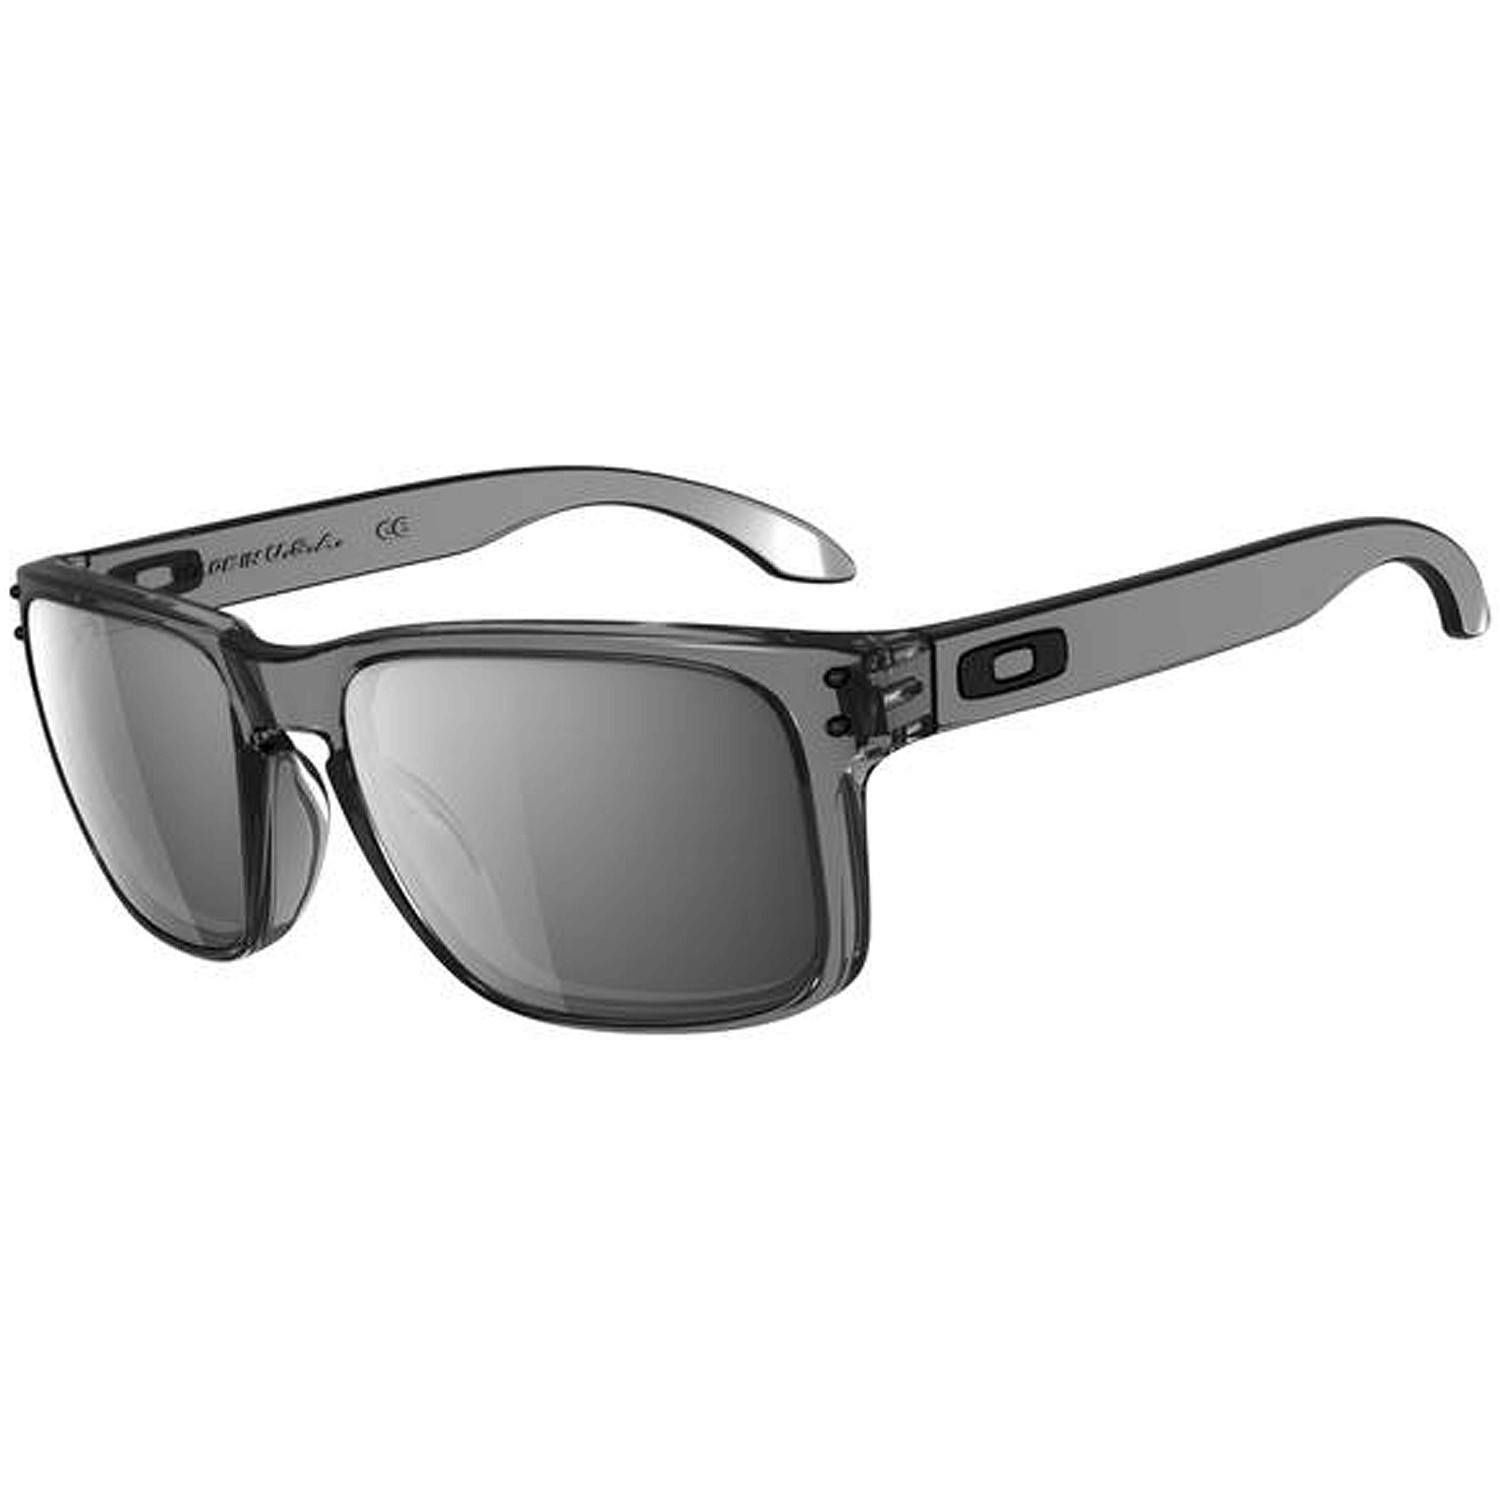 4e82a922217 Oakley Mens Sunglasses Holbrook Grey Smoke Black Iridium ...